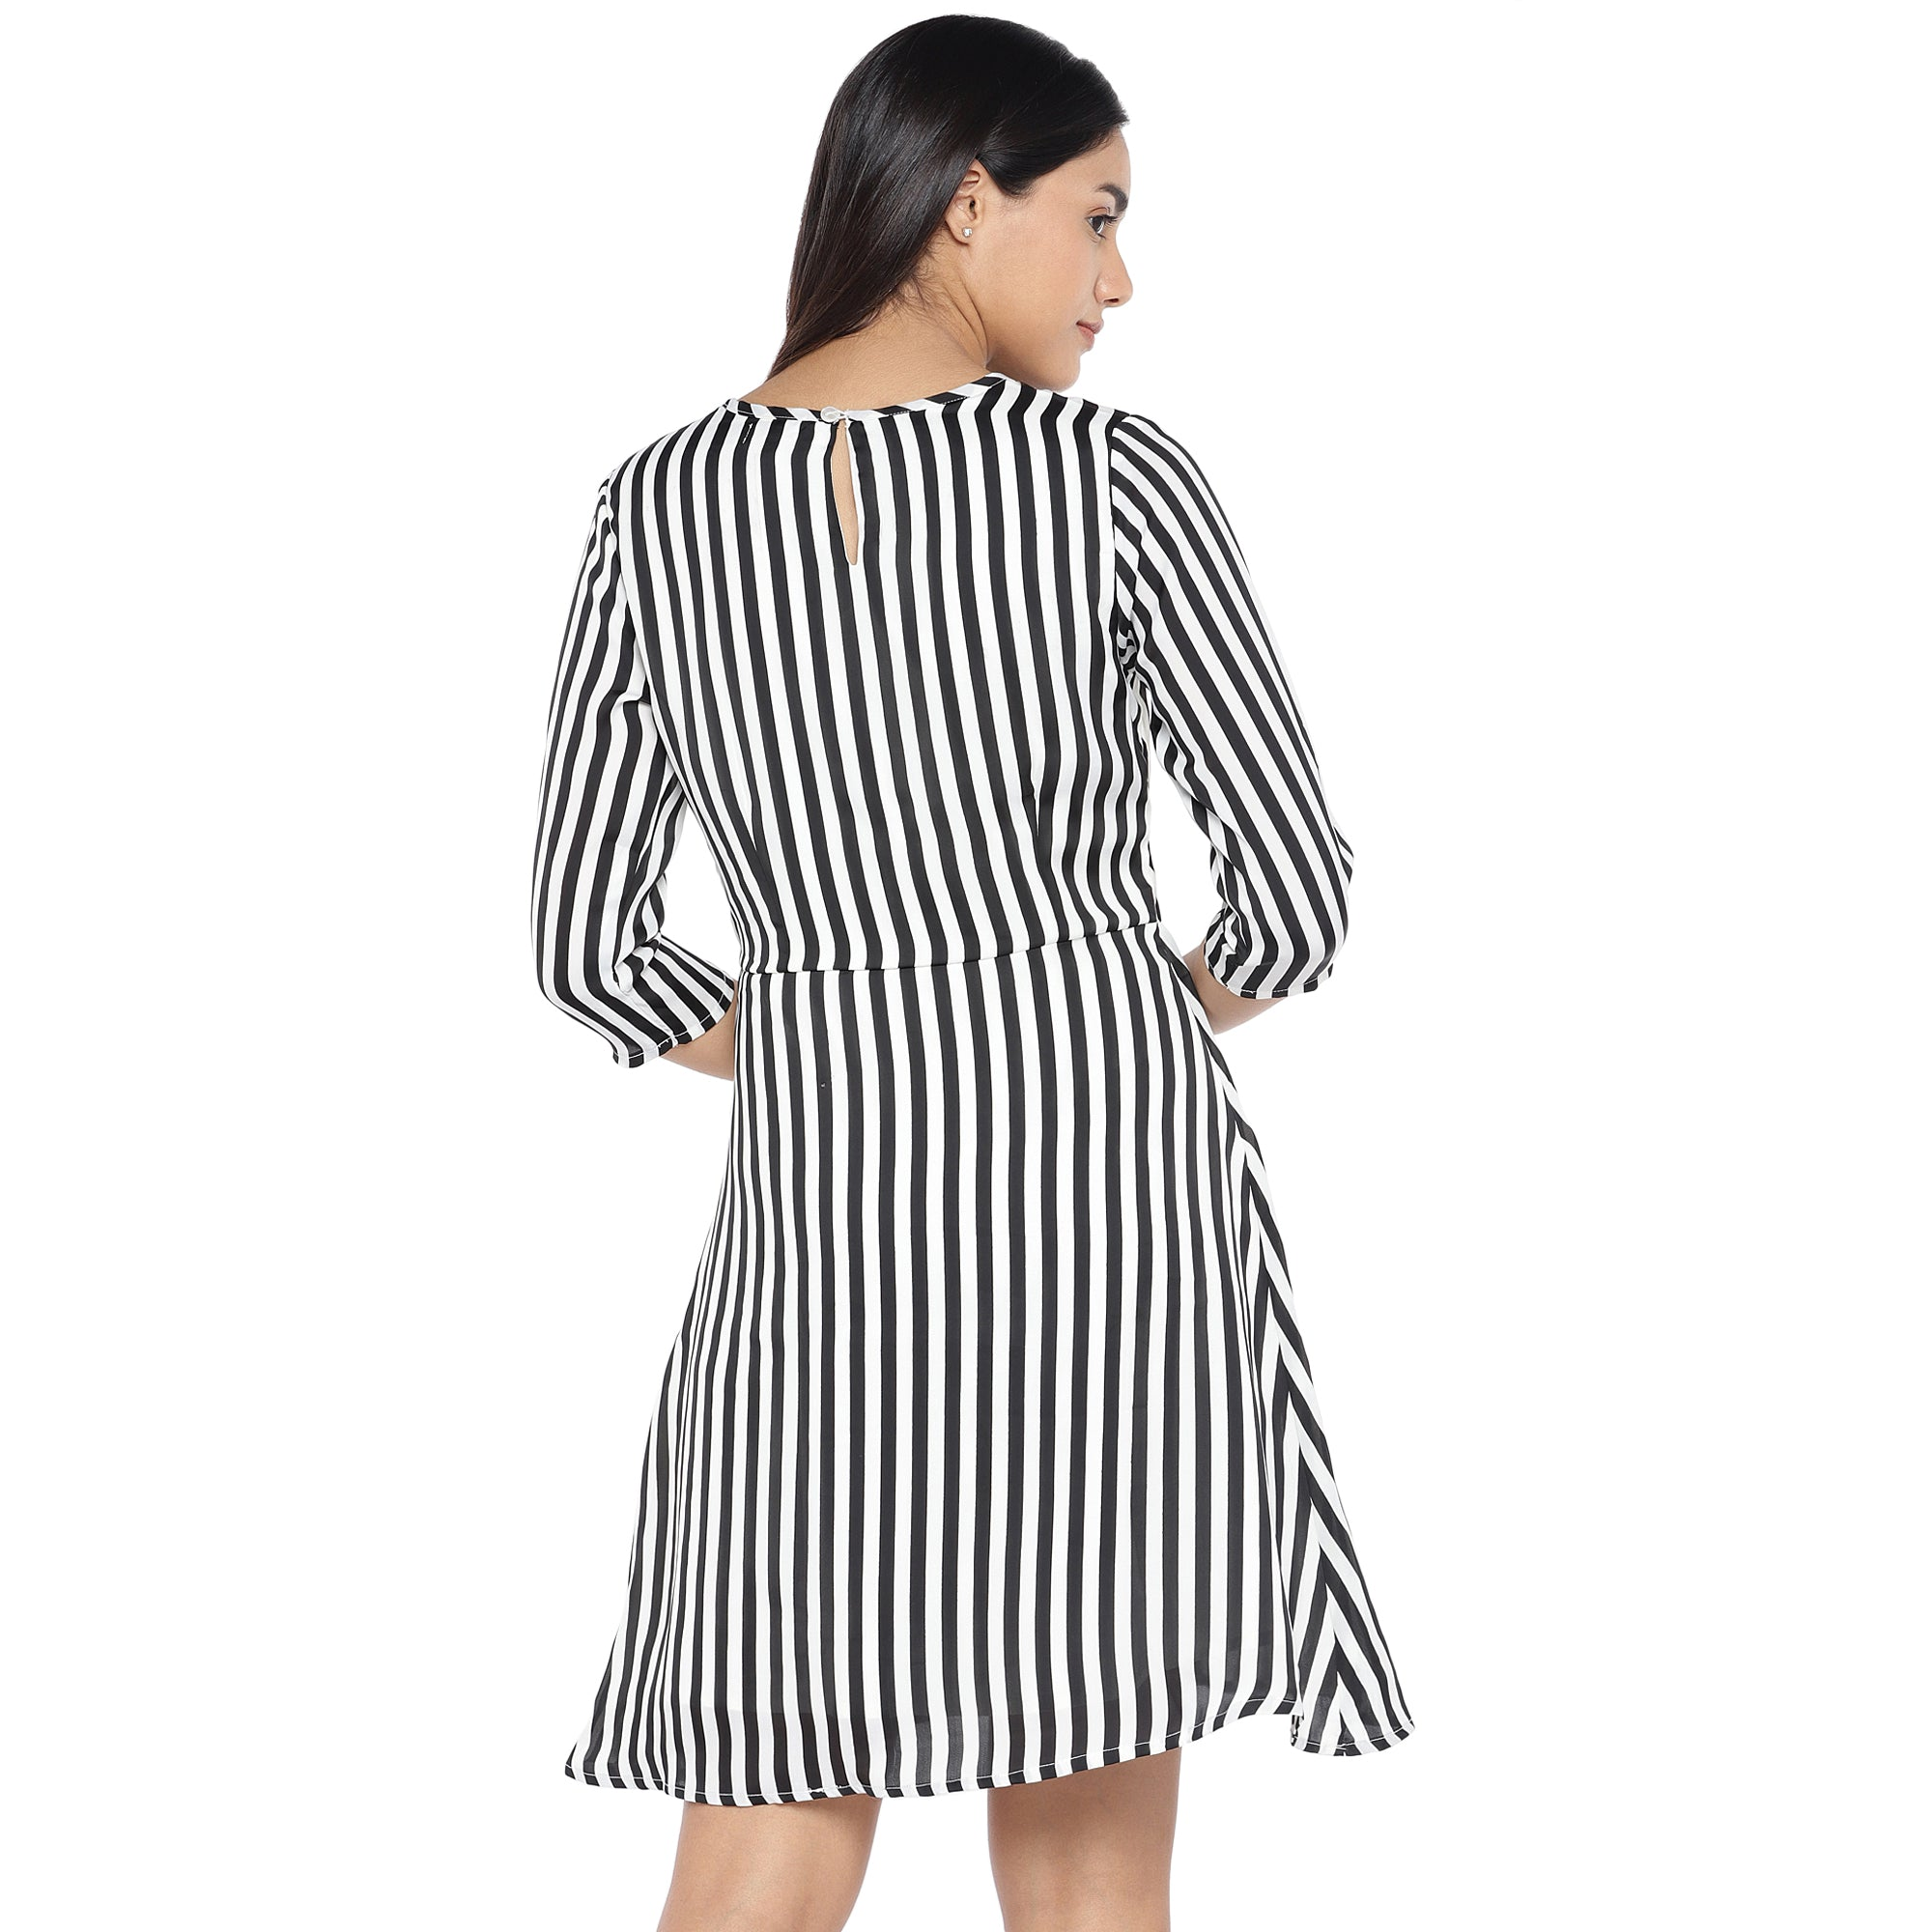 Black & White Striped A-Line Dress-3